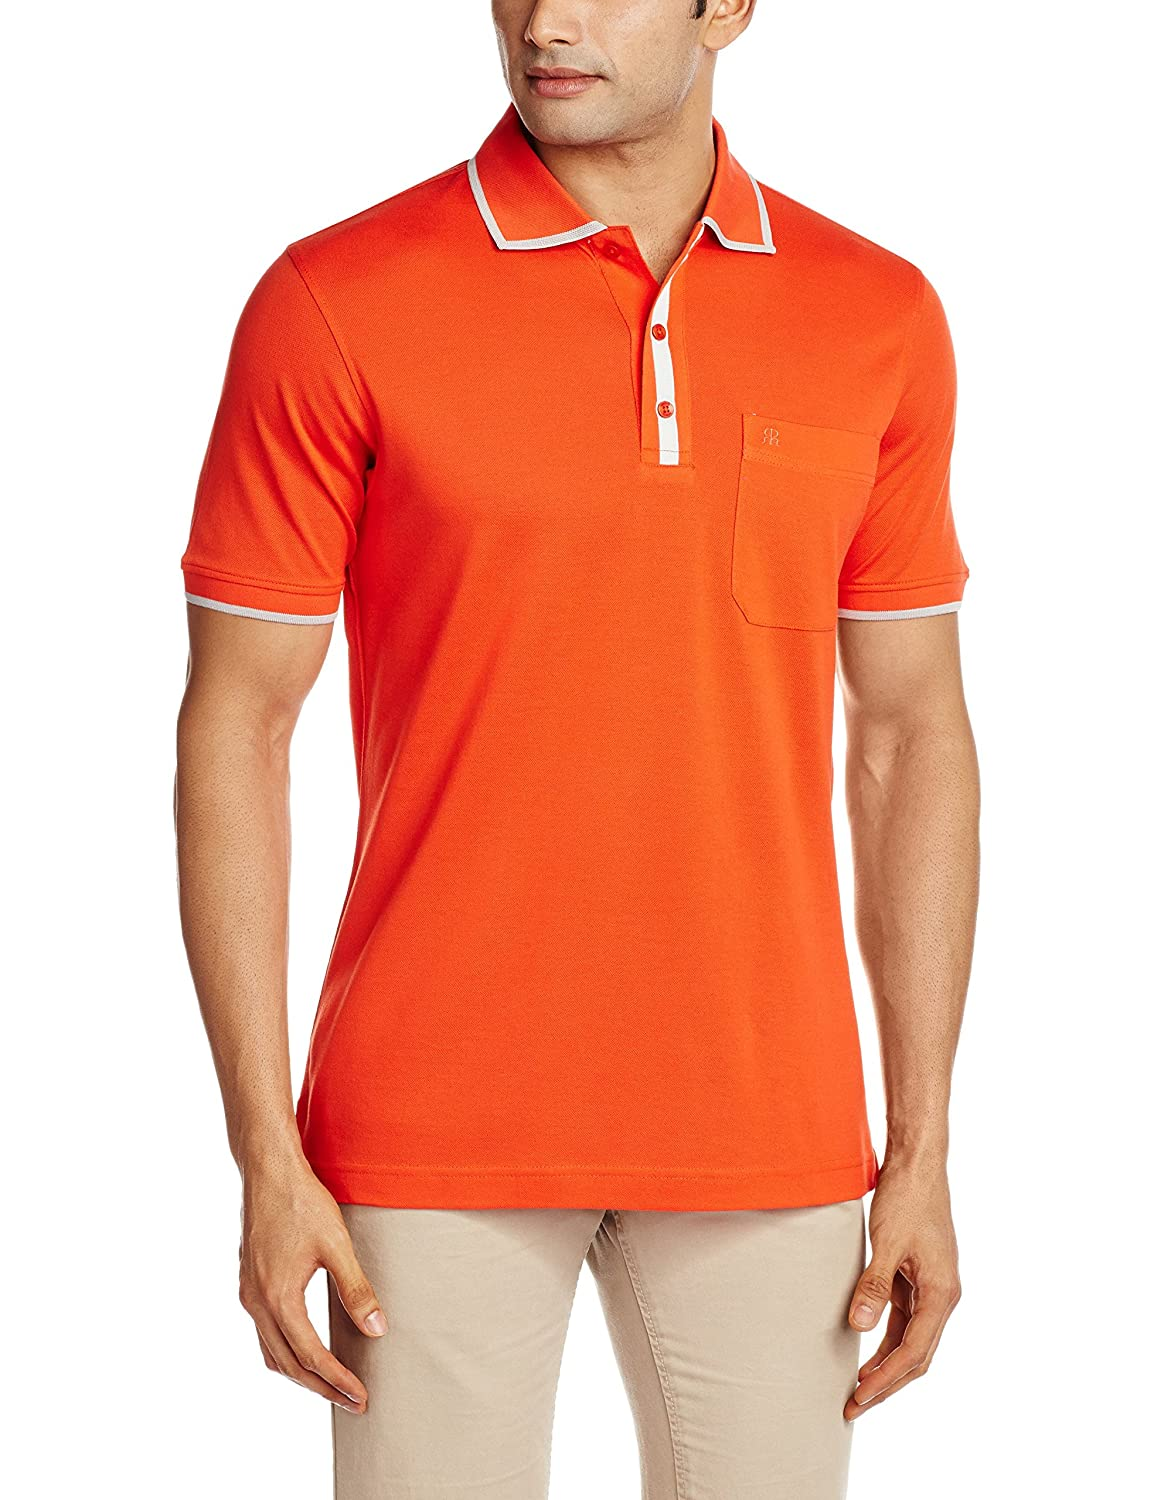 Flat 60% off Raymond Men's Clothing By Amazon | Raymond Men's Cotton T-Shirt @ Rs.639